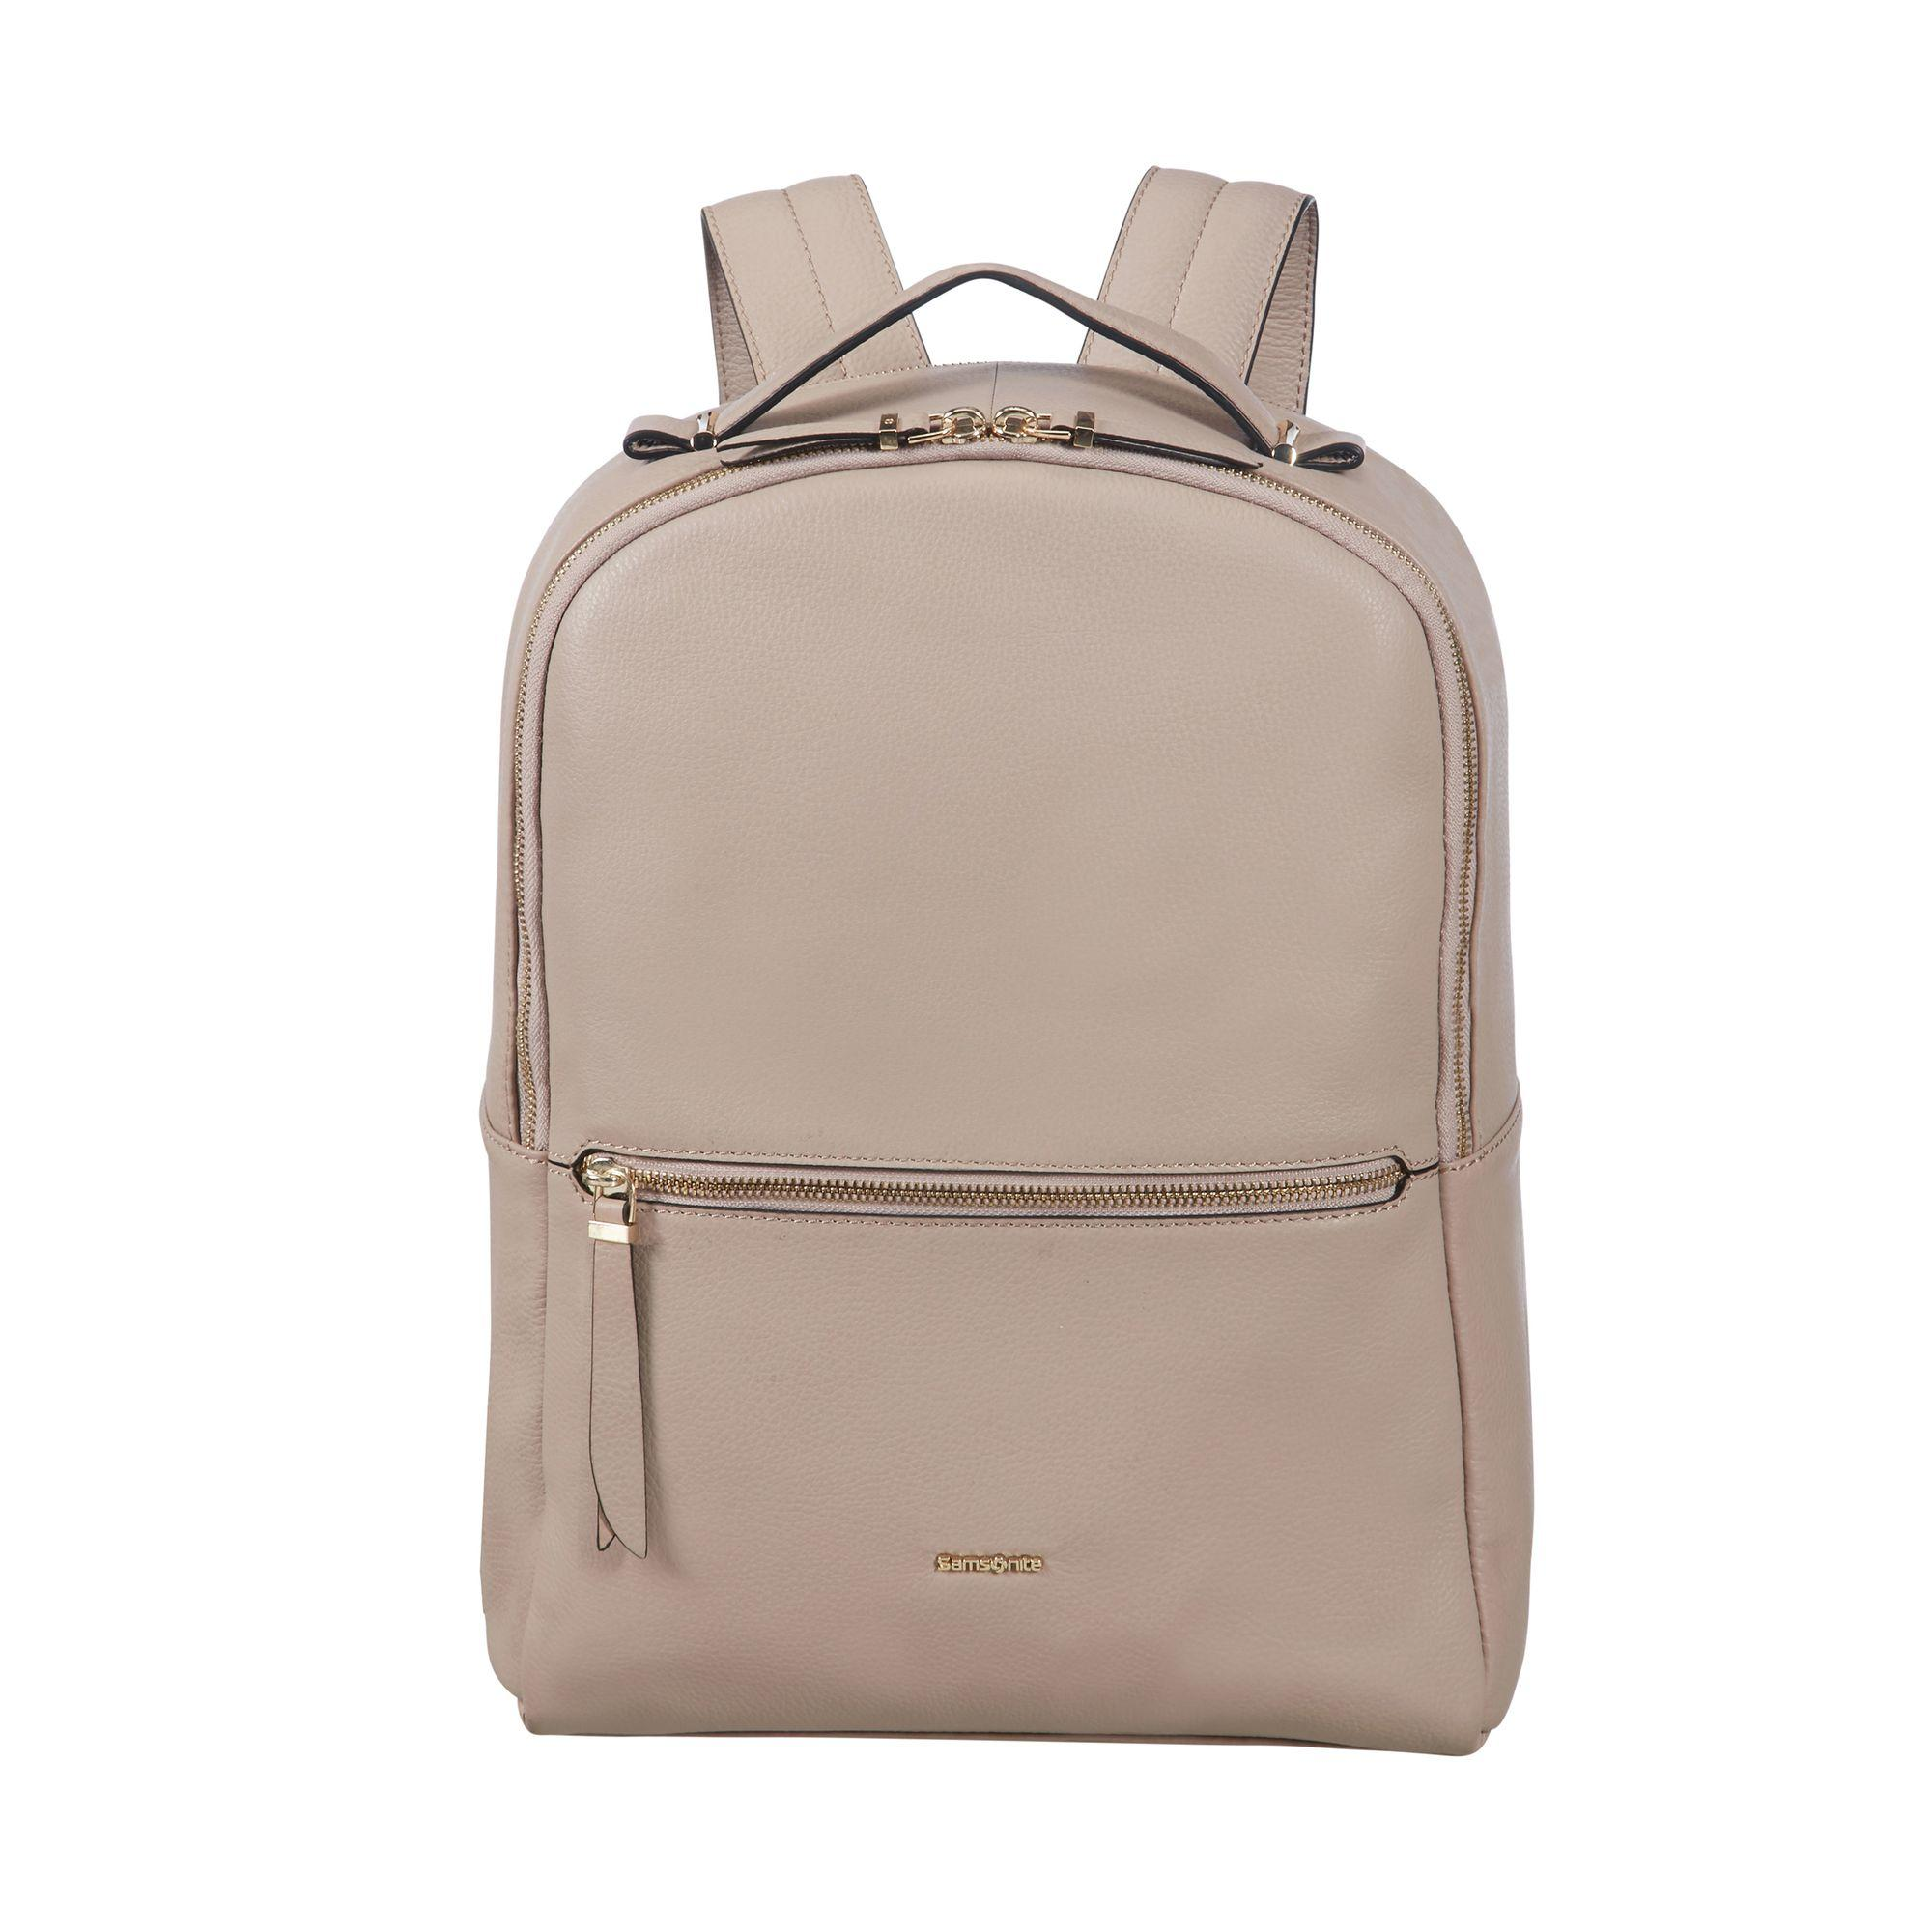 "Samsonite Highline II pc ryggsekk i skinn 14,1"", Beige Samsonite"